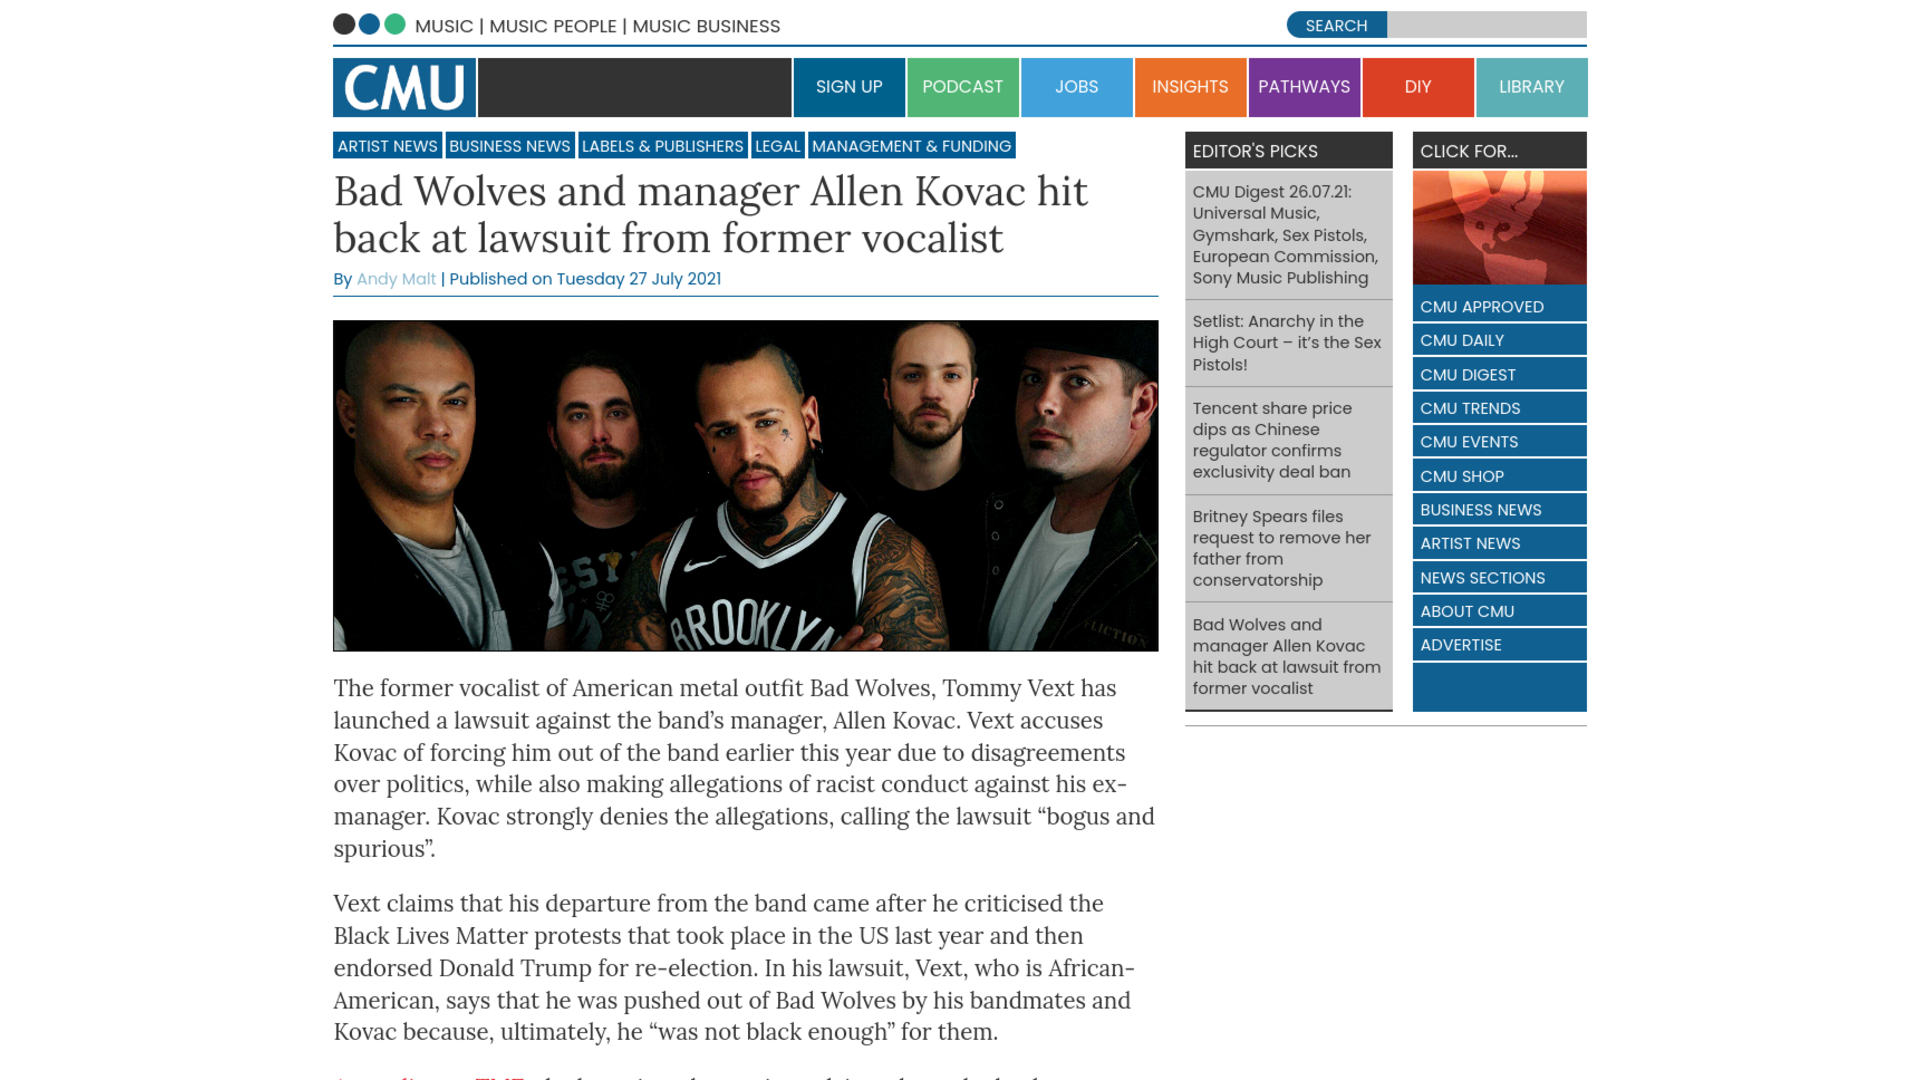 Fairness Rocks News Bad Wolves and manager Allen Kovac hit back at lawsuit from former vocalist